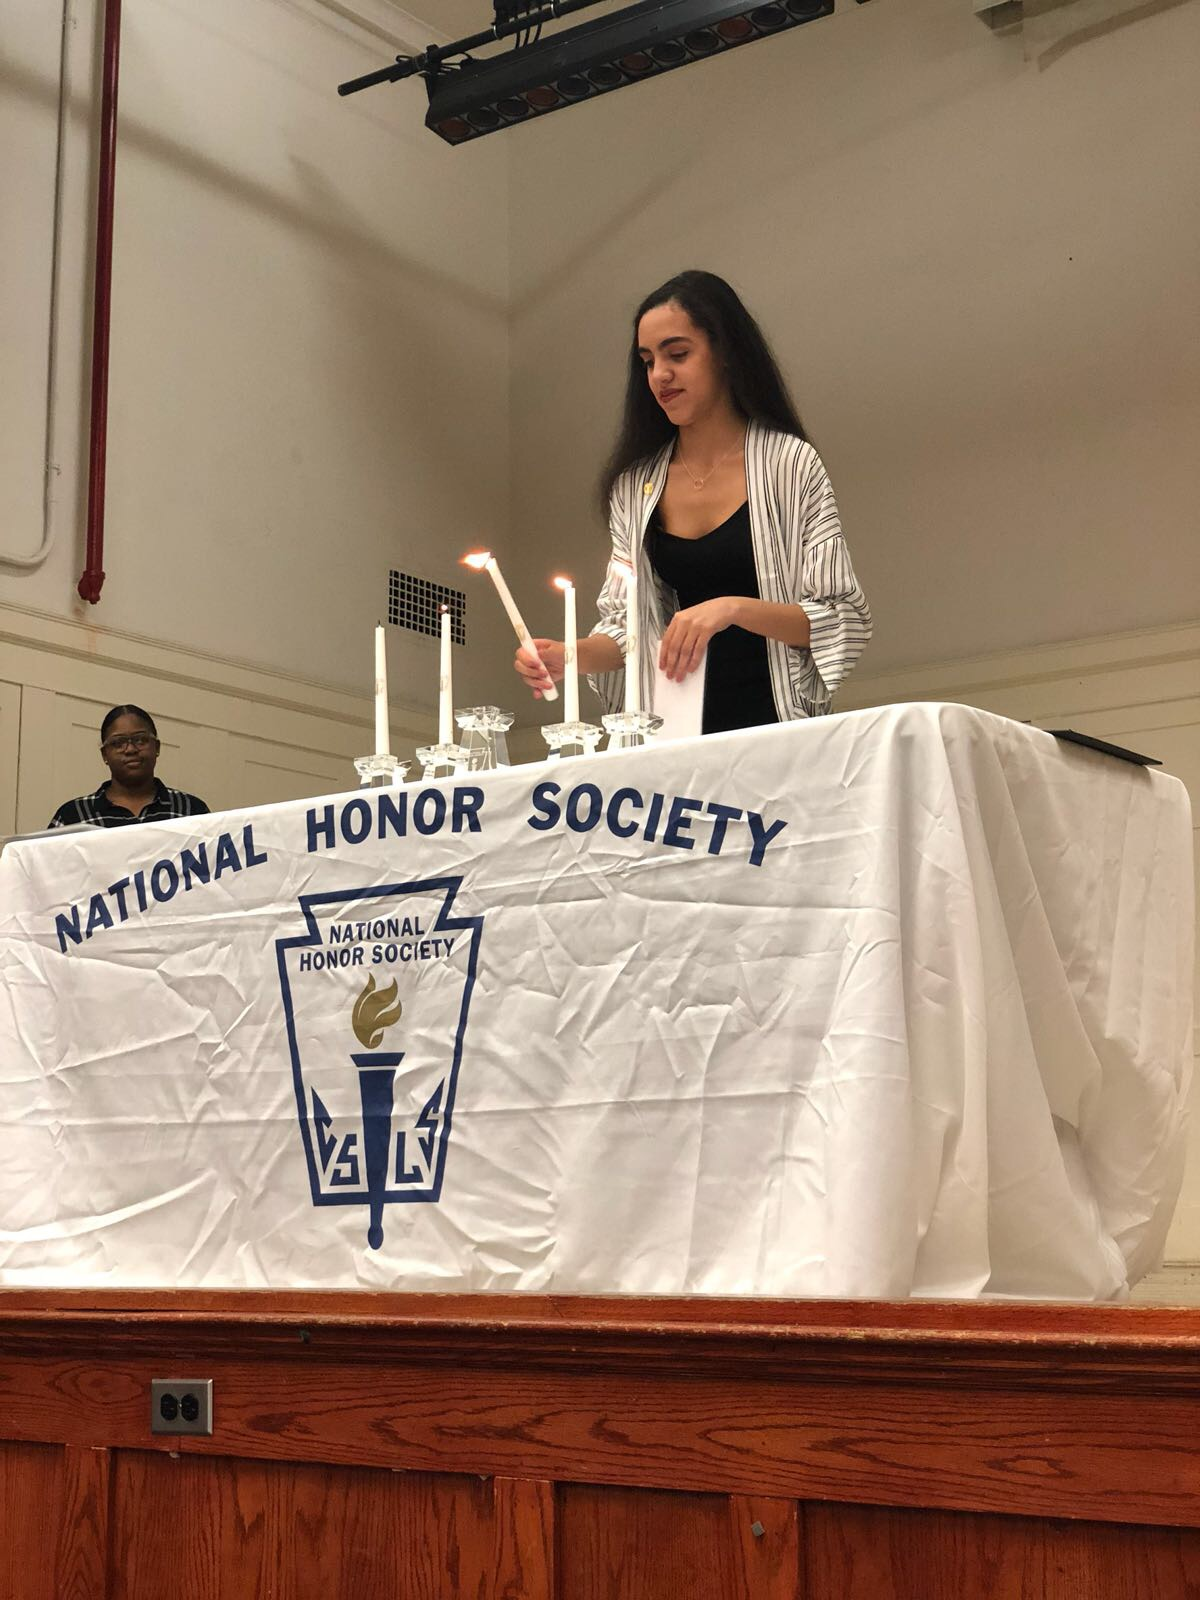 NHS Induction Ceremony